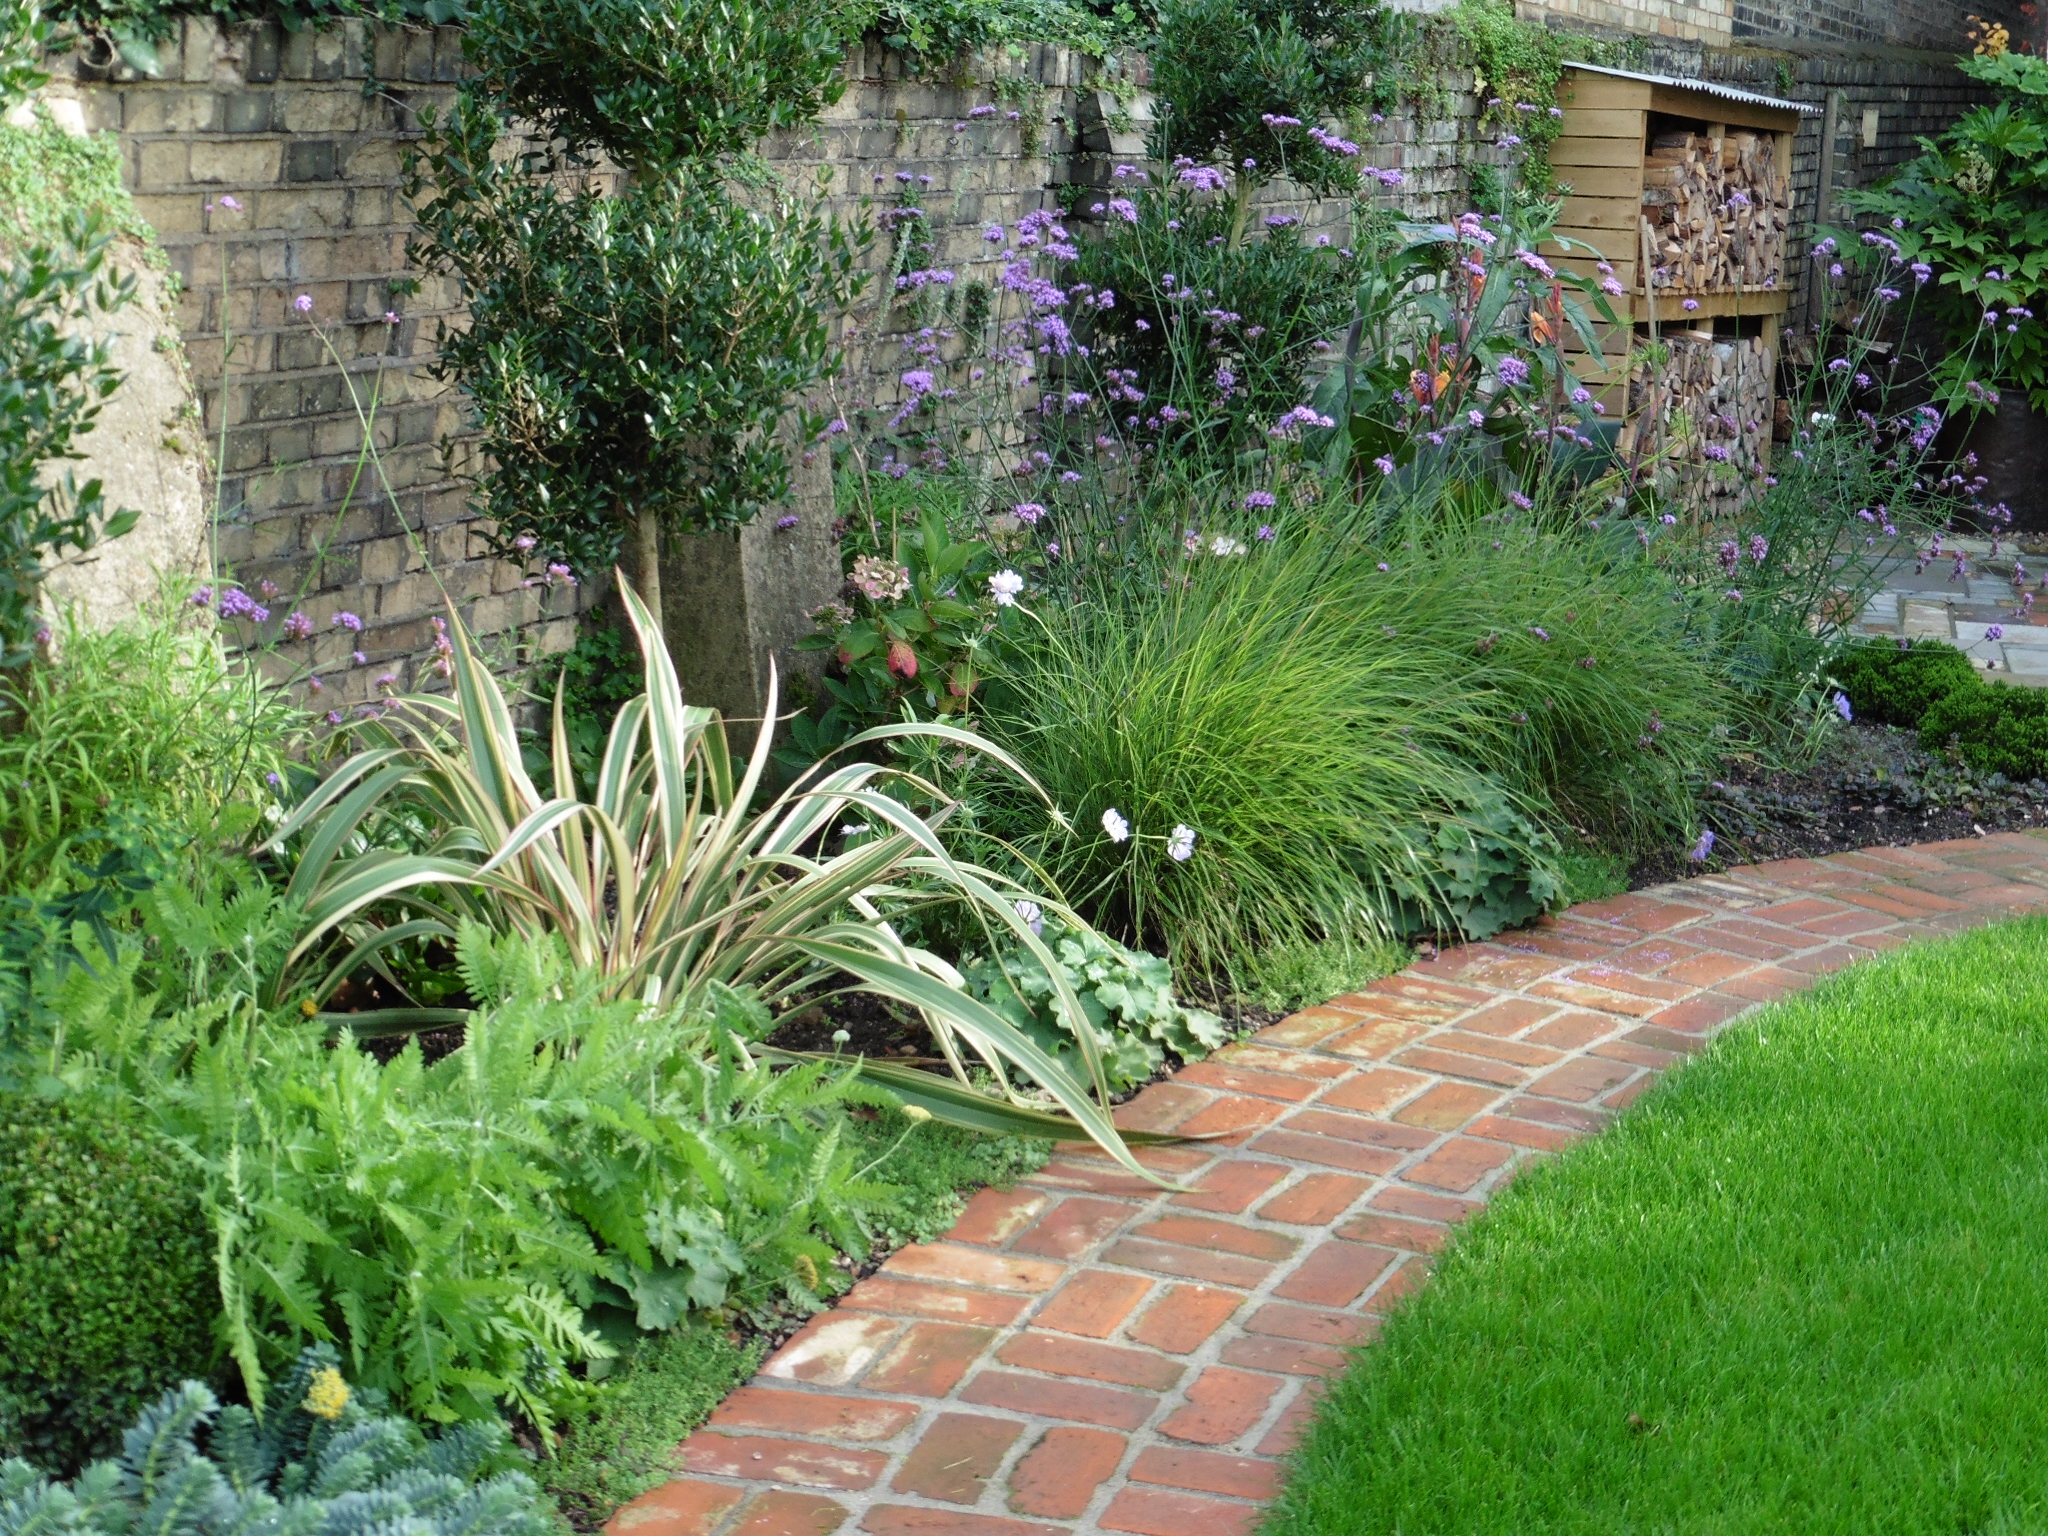 Helen riches garden design and writing for Garden design ideas in uk